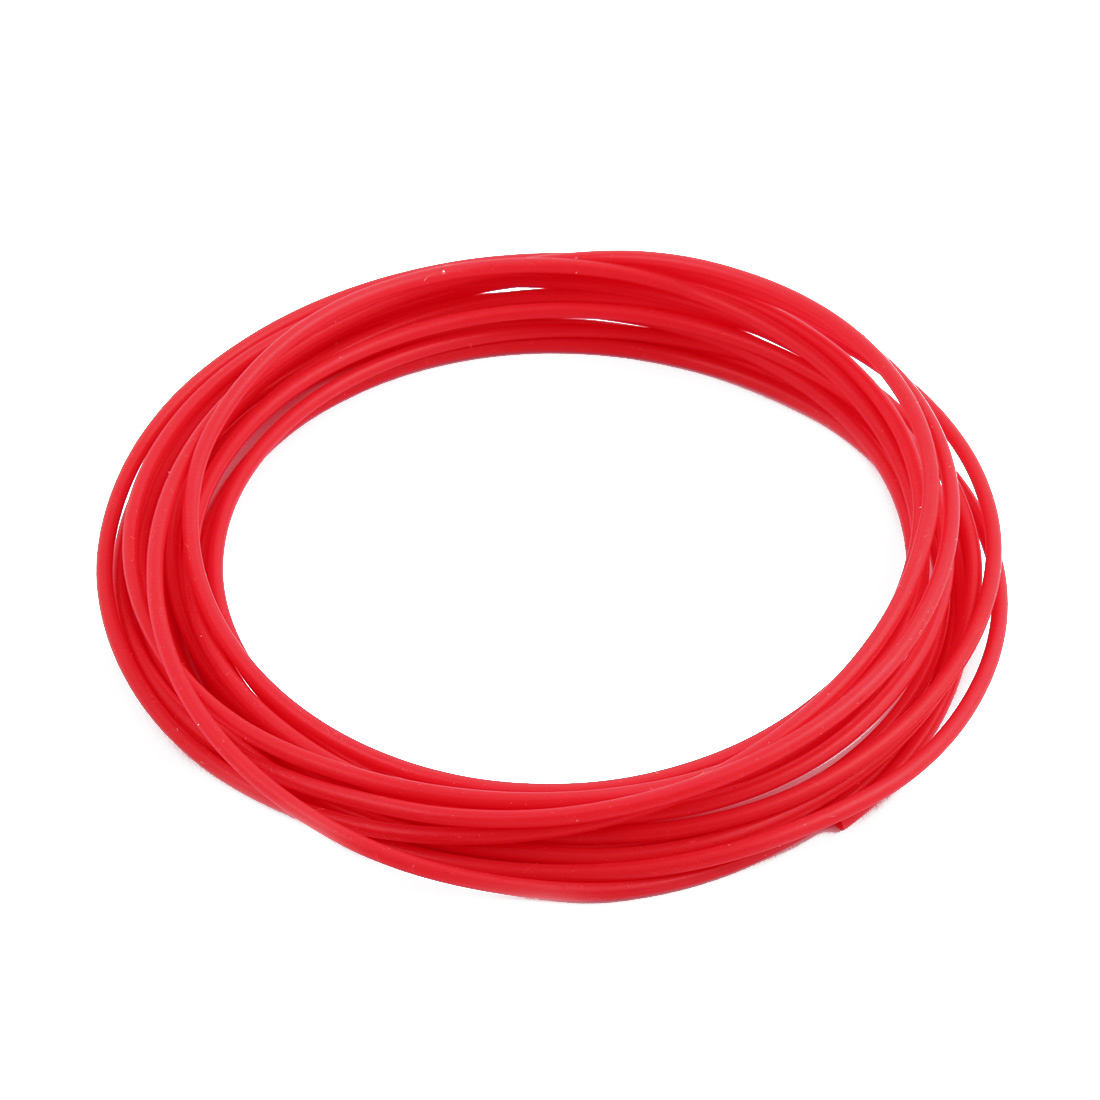 2.16mmx2.56mm PTFE Resistant High Temperature Red Tubing 5 Meters 16.4Ft